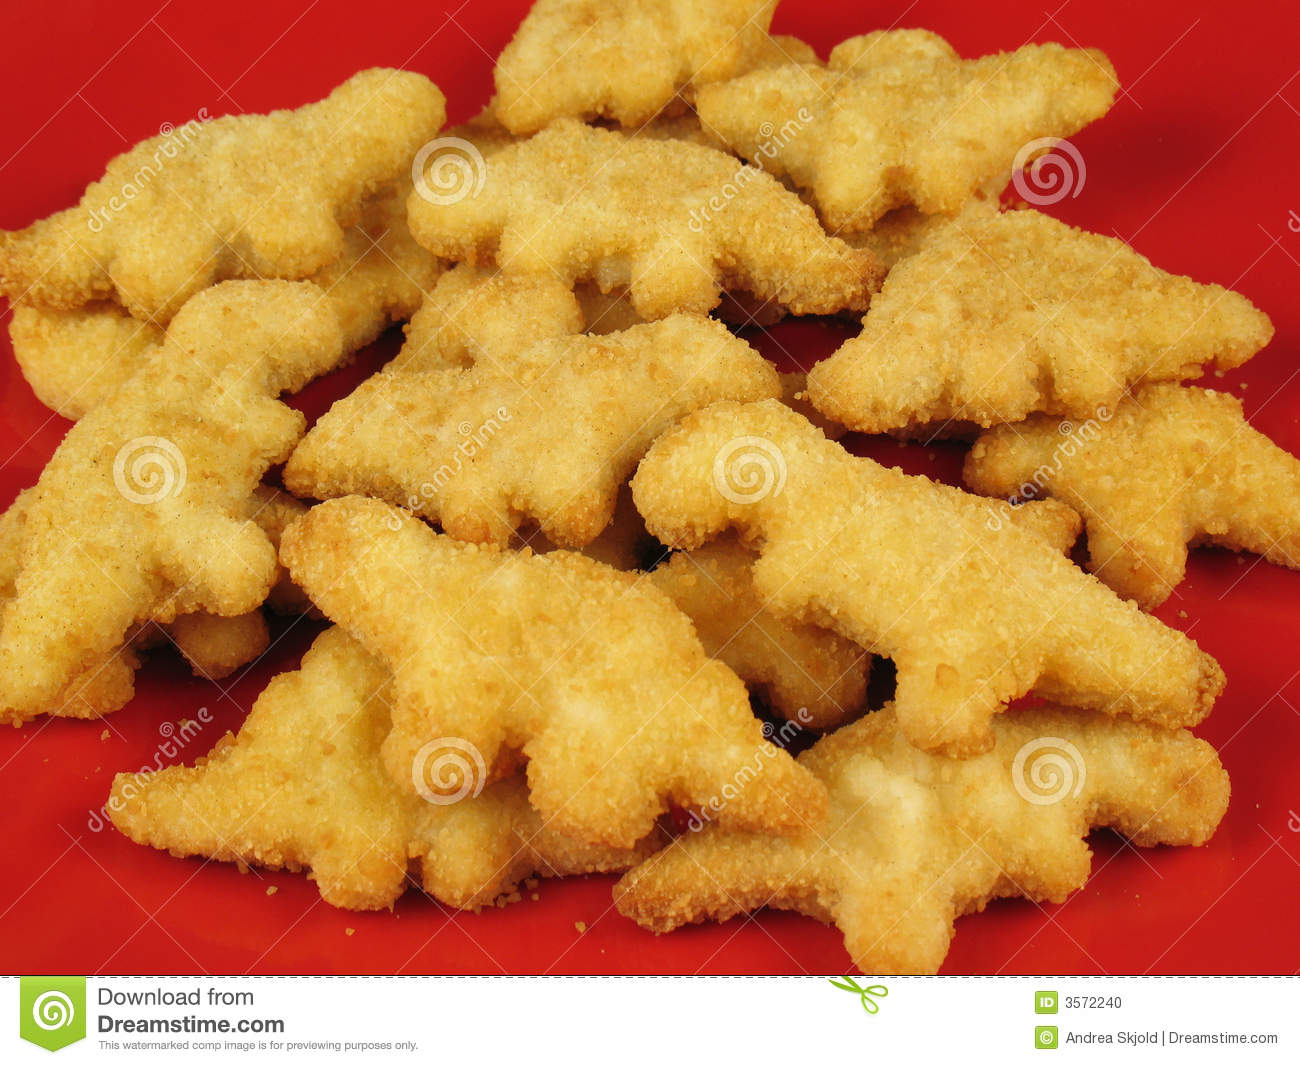 Unhealthy Food Plate Dinosaur Nuggets 3 sto...